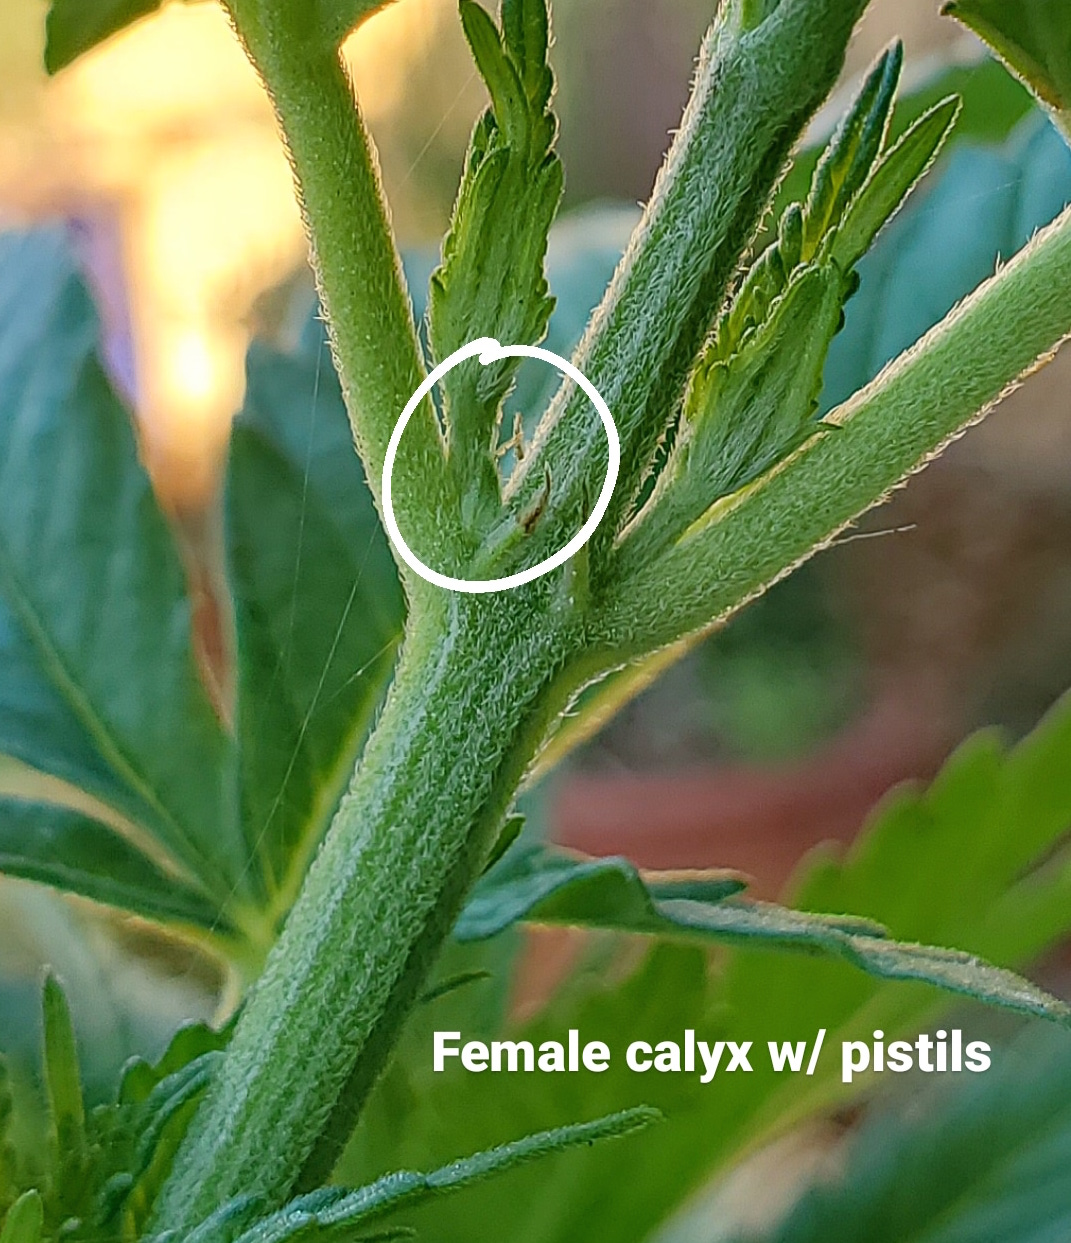 A close up image a female preflower or calyx with a pistil coming out of the top. Look for preflowers when determining your cannabis sex.